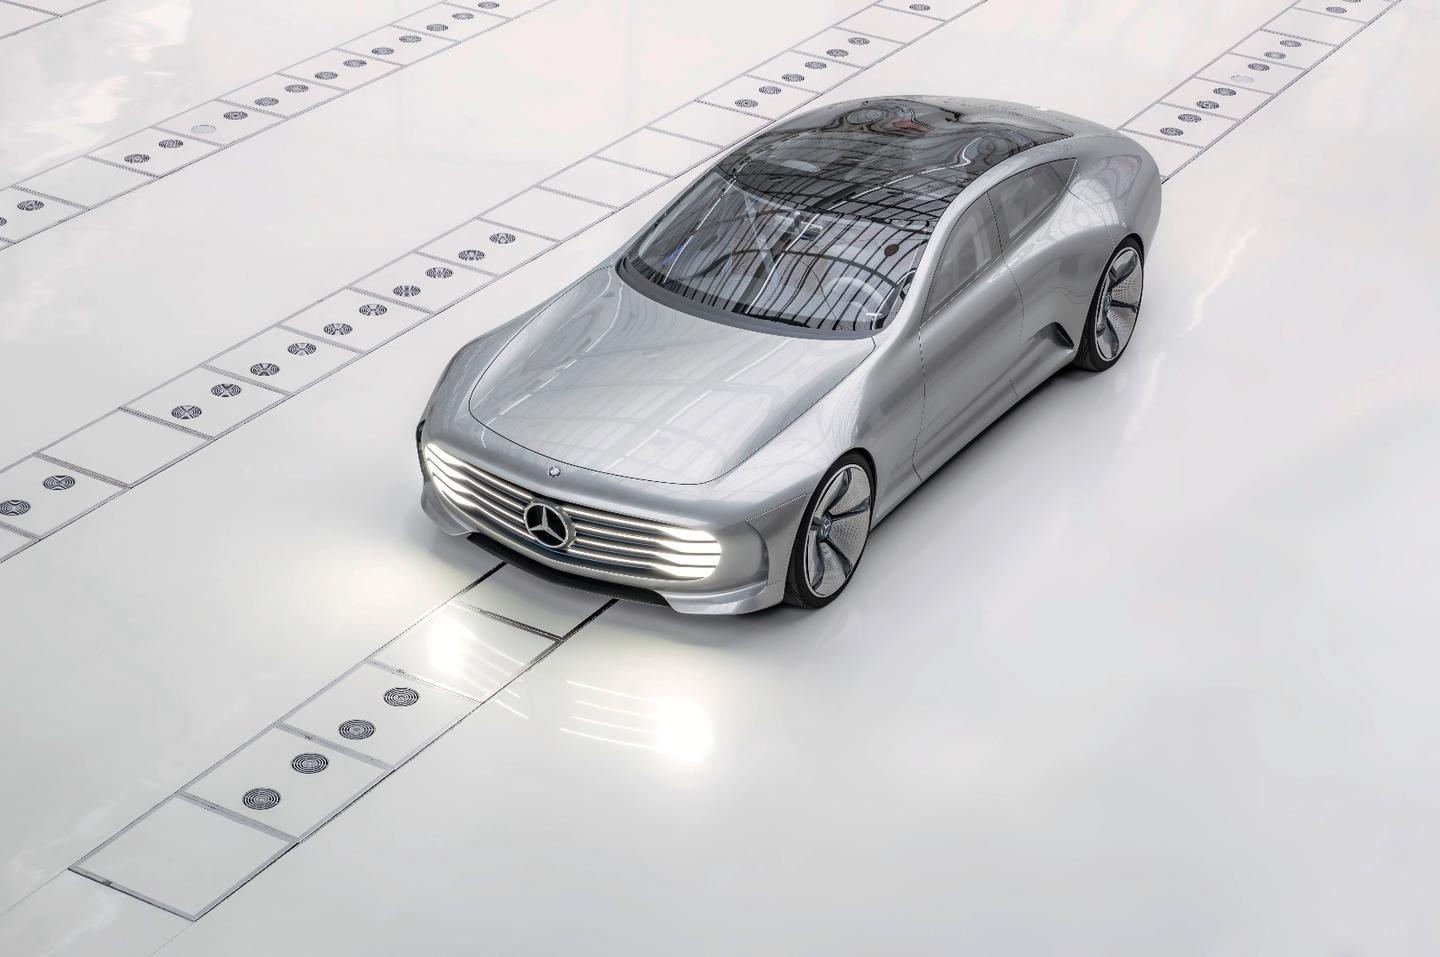 The Mercedes Concept IAA changes its shape depending on how fast the car is moving